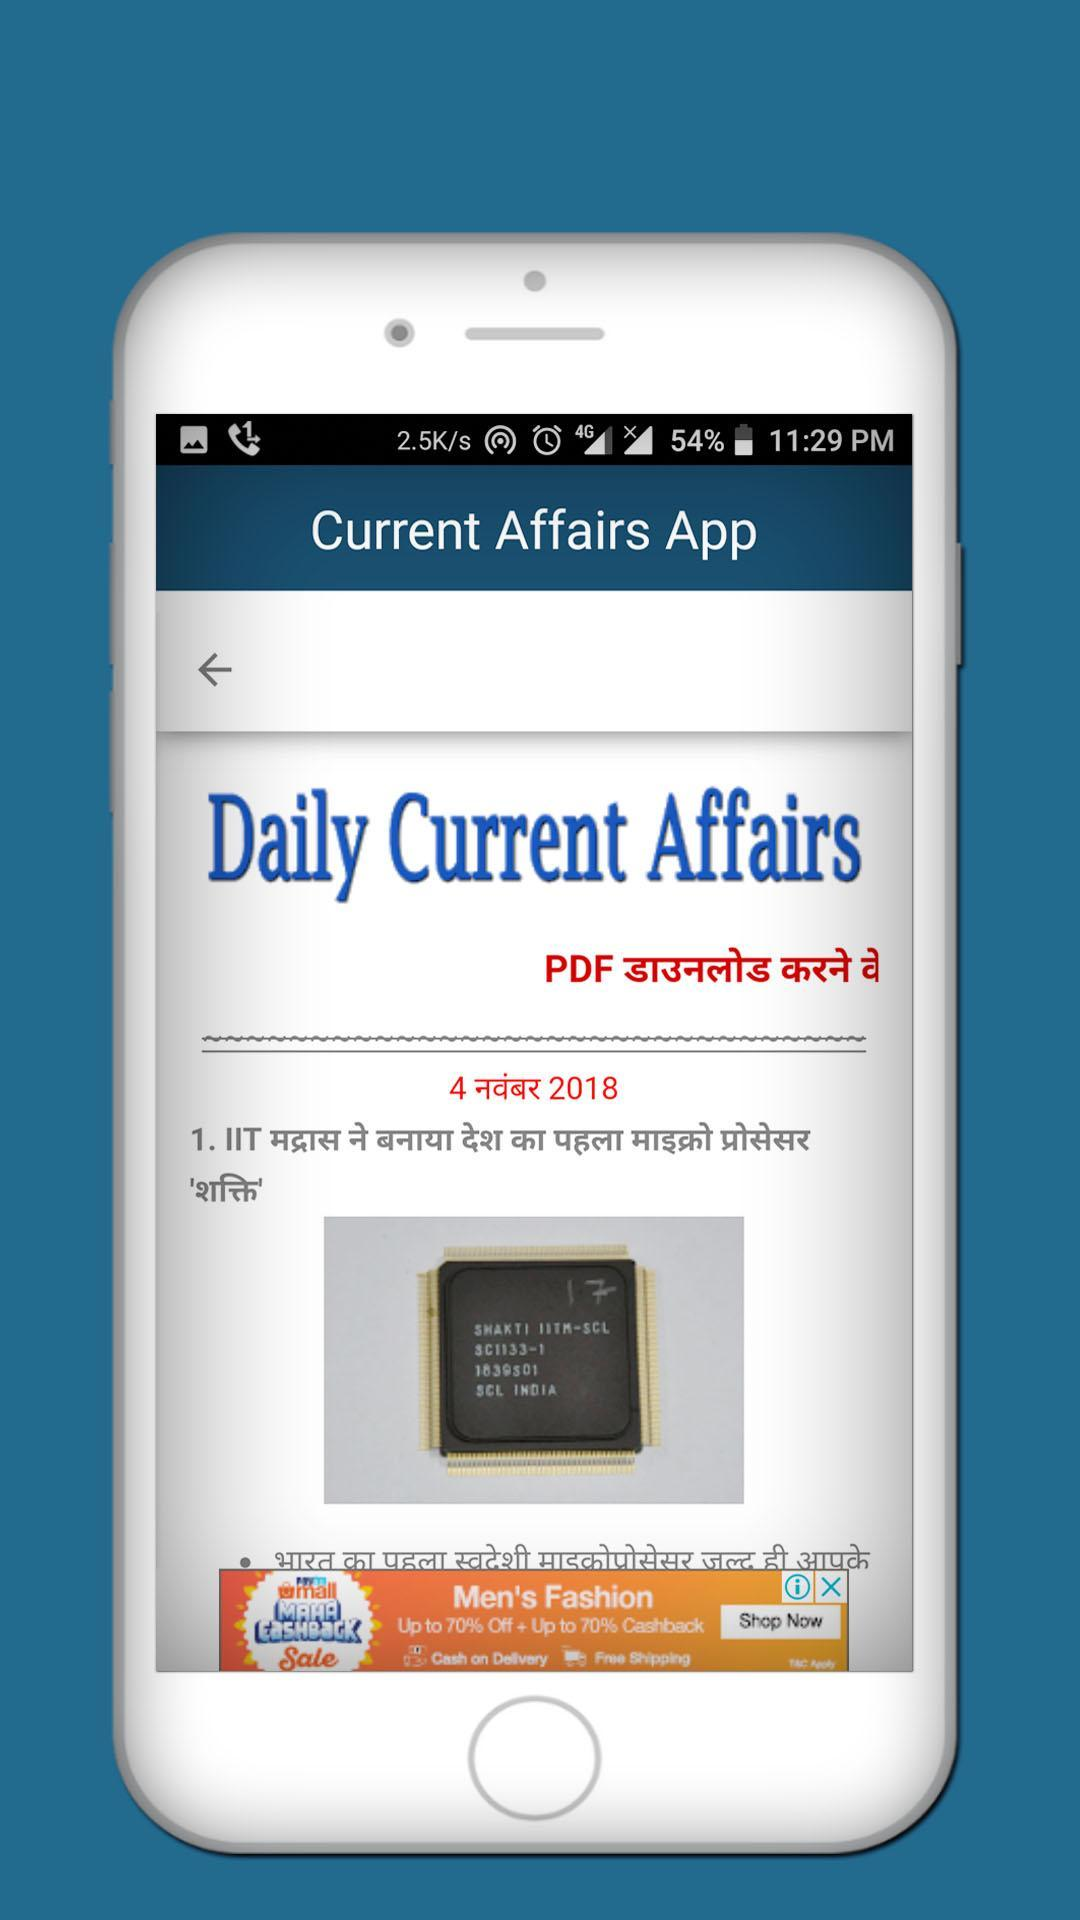 Current Affairs 2019 for Android - APK Download